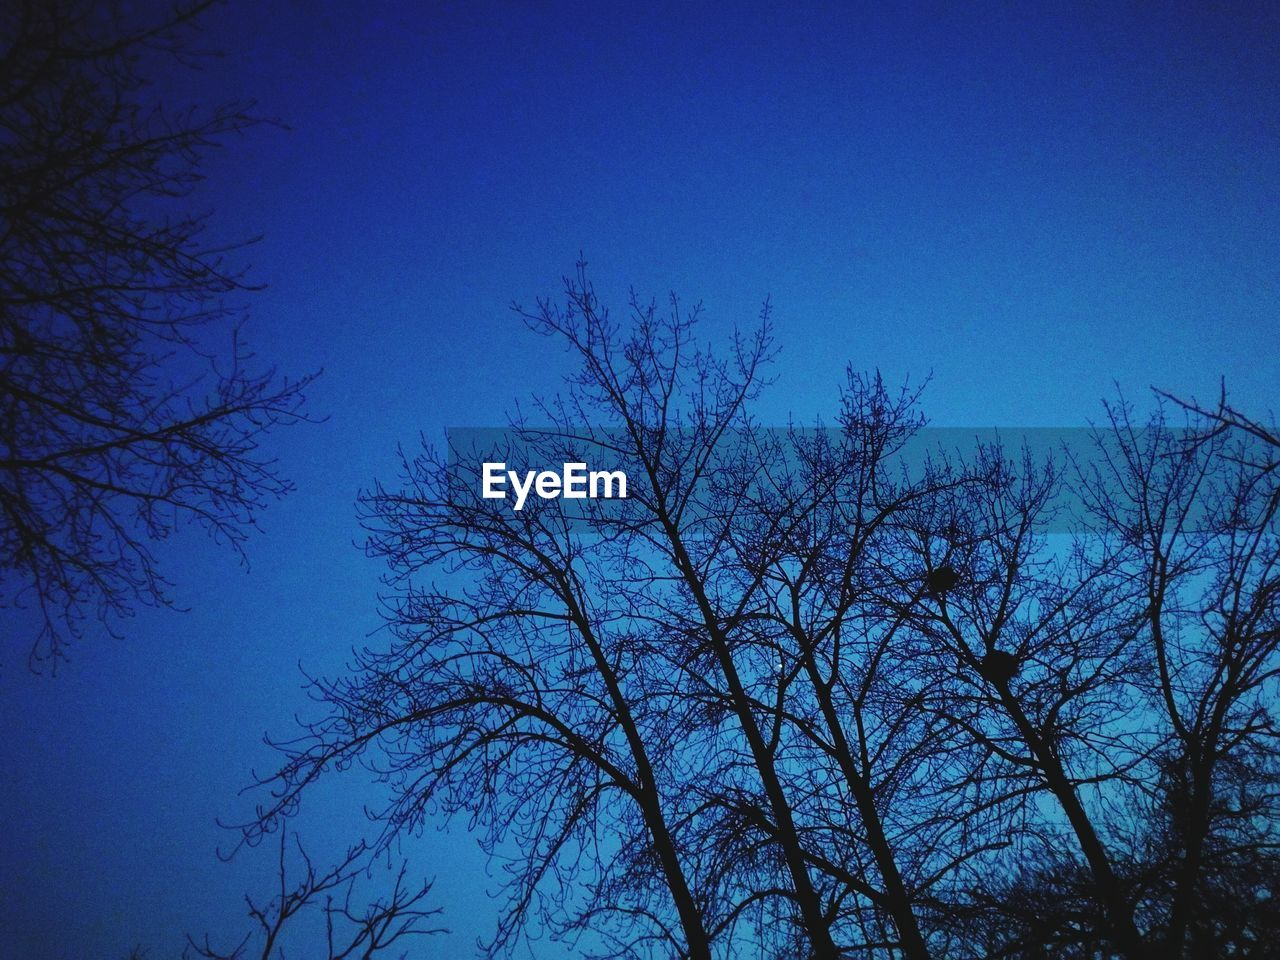 blue, nature, low angle view, tree, clear sky, beauty in nature, outdoors, branch, tranquility, no people, bare tree, growth, day, sky